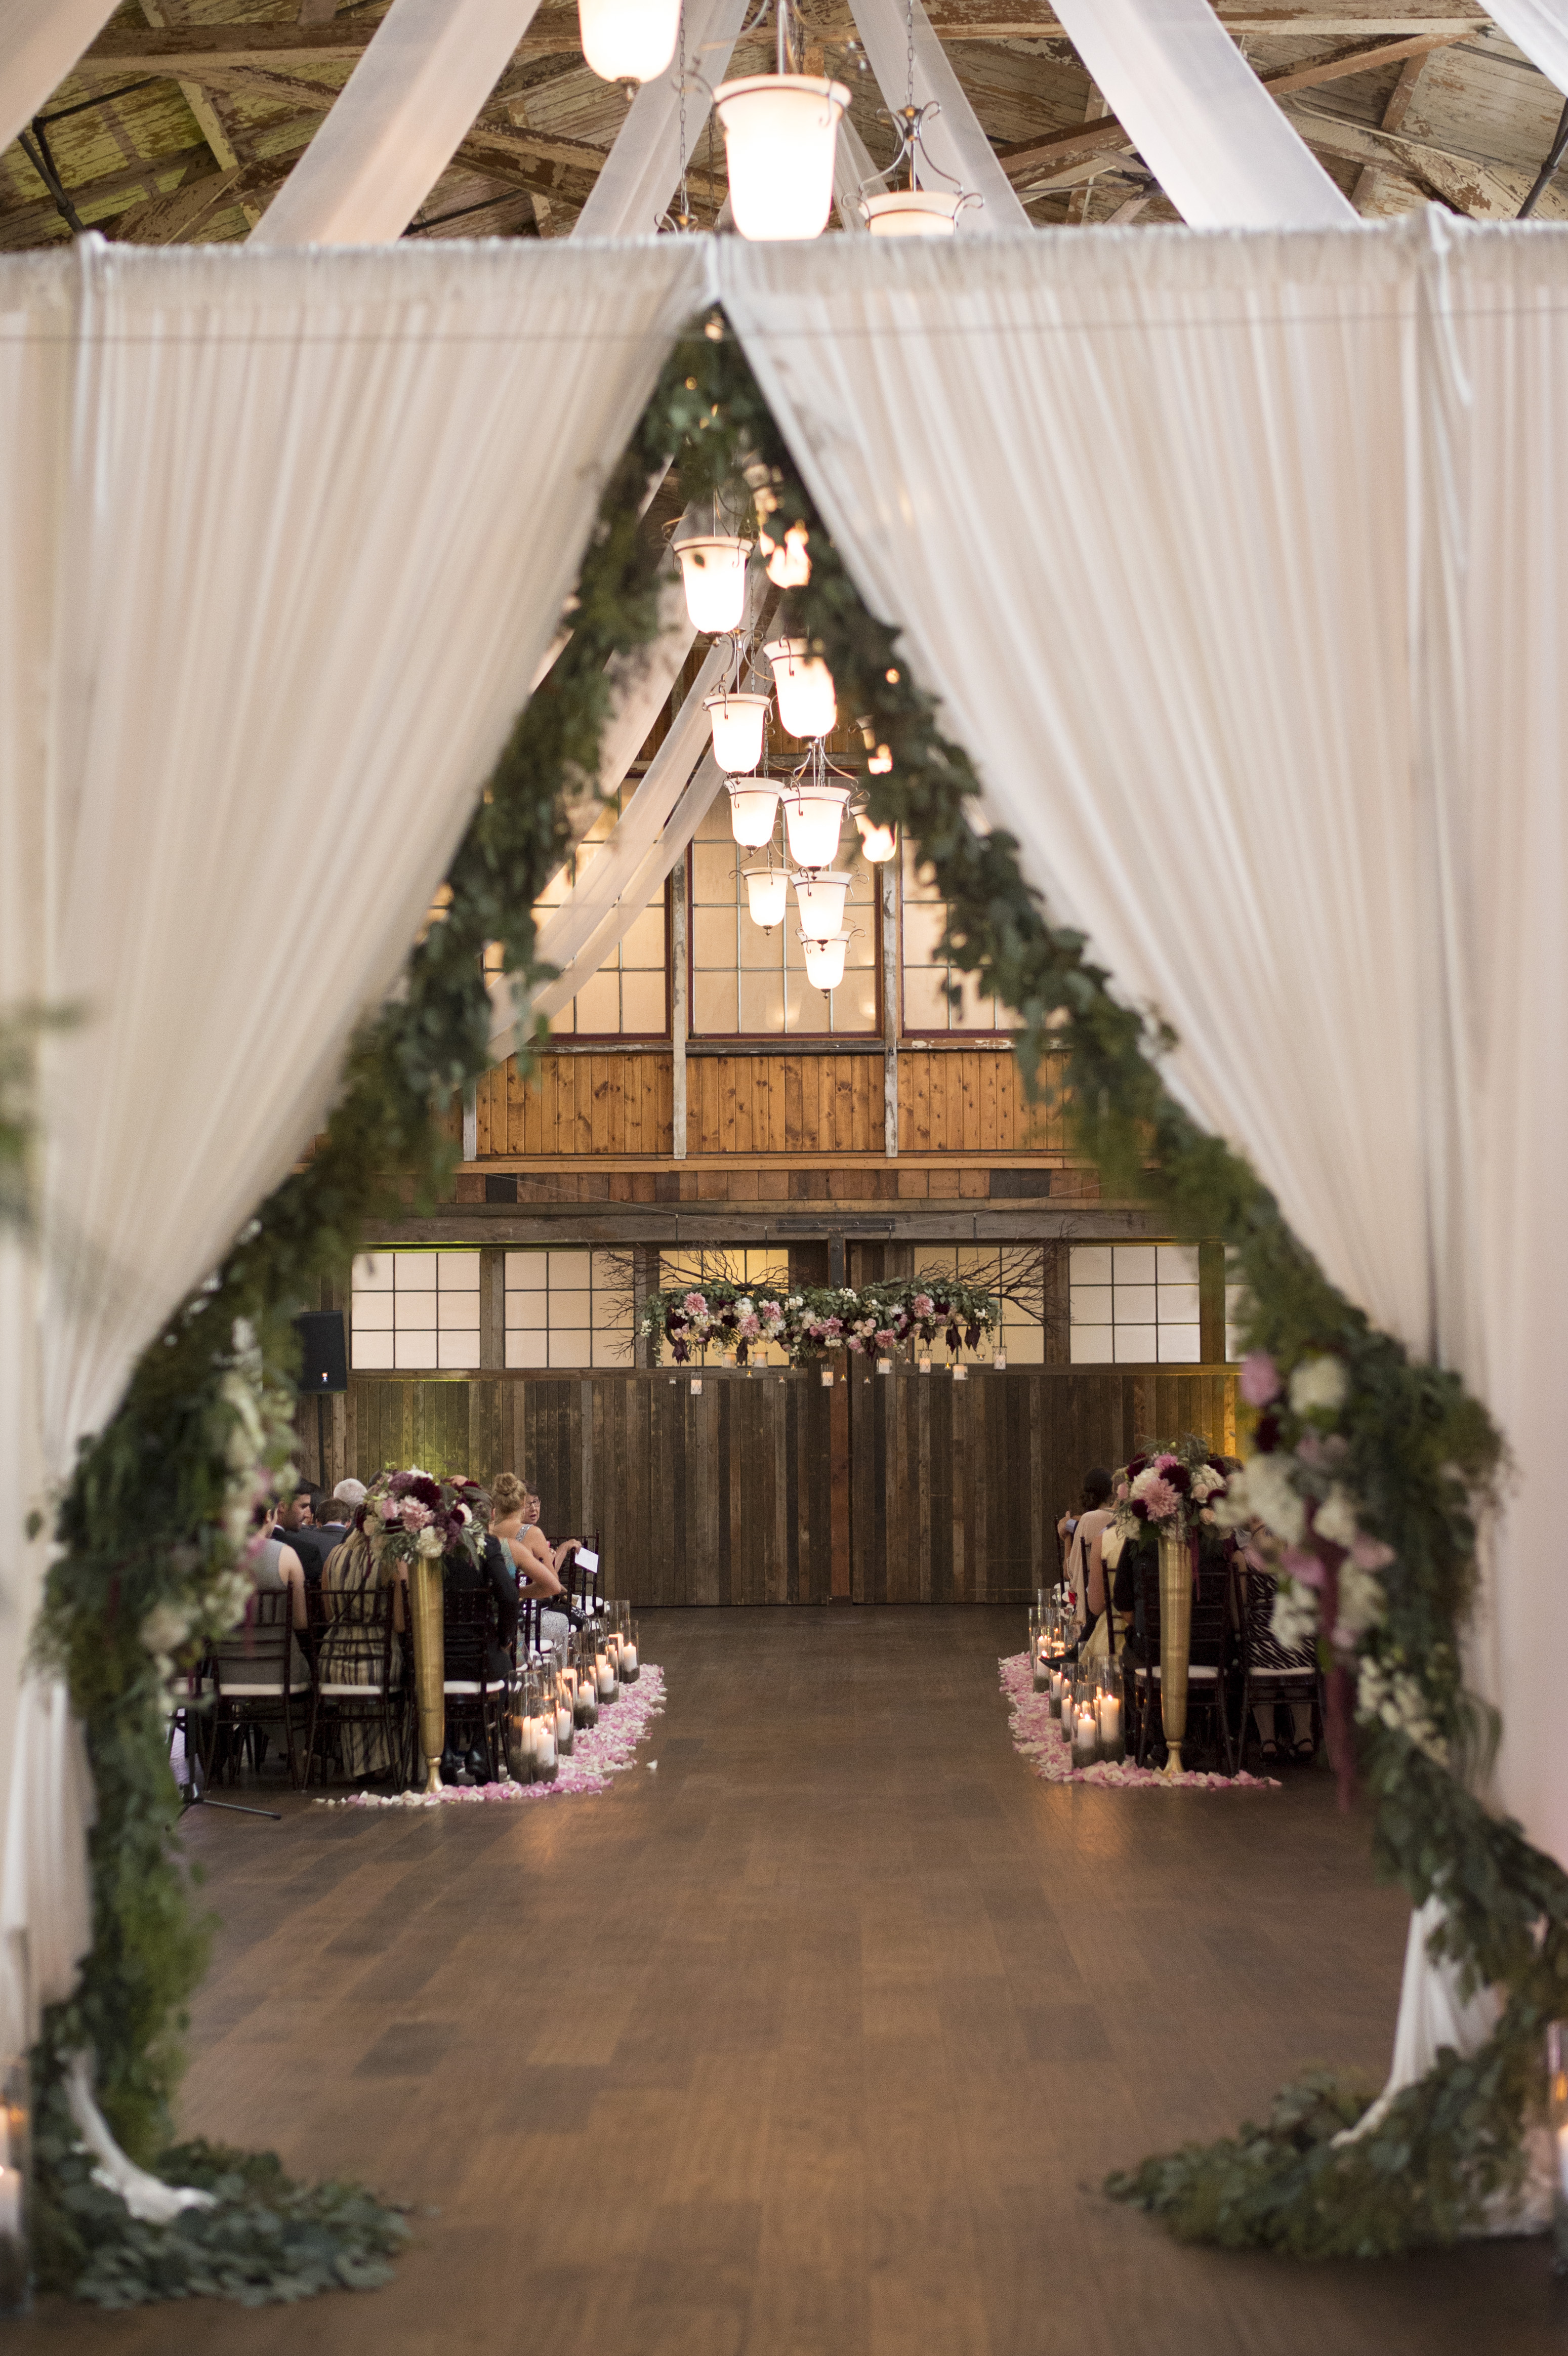 Sodo Park Wedding in Seattle | Elegant, garden ceremony decor, with greenery swag drapery, and hanging floral altar piece | Perfectly Posh Events | Kimberly Kay Photography | Floressence